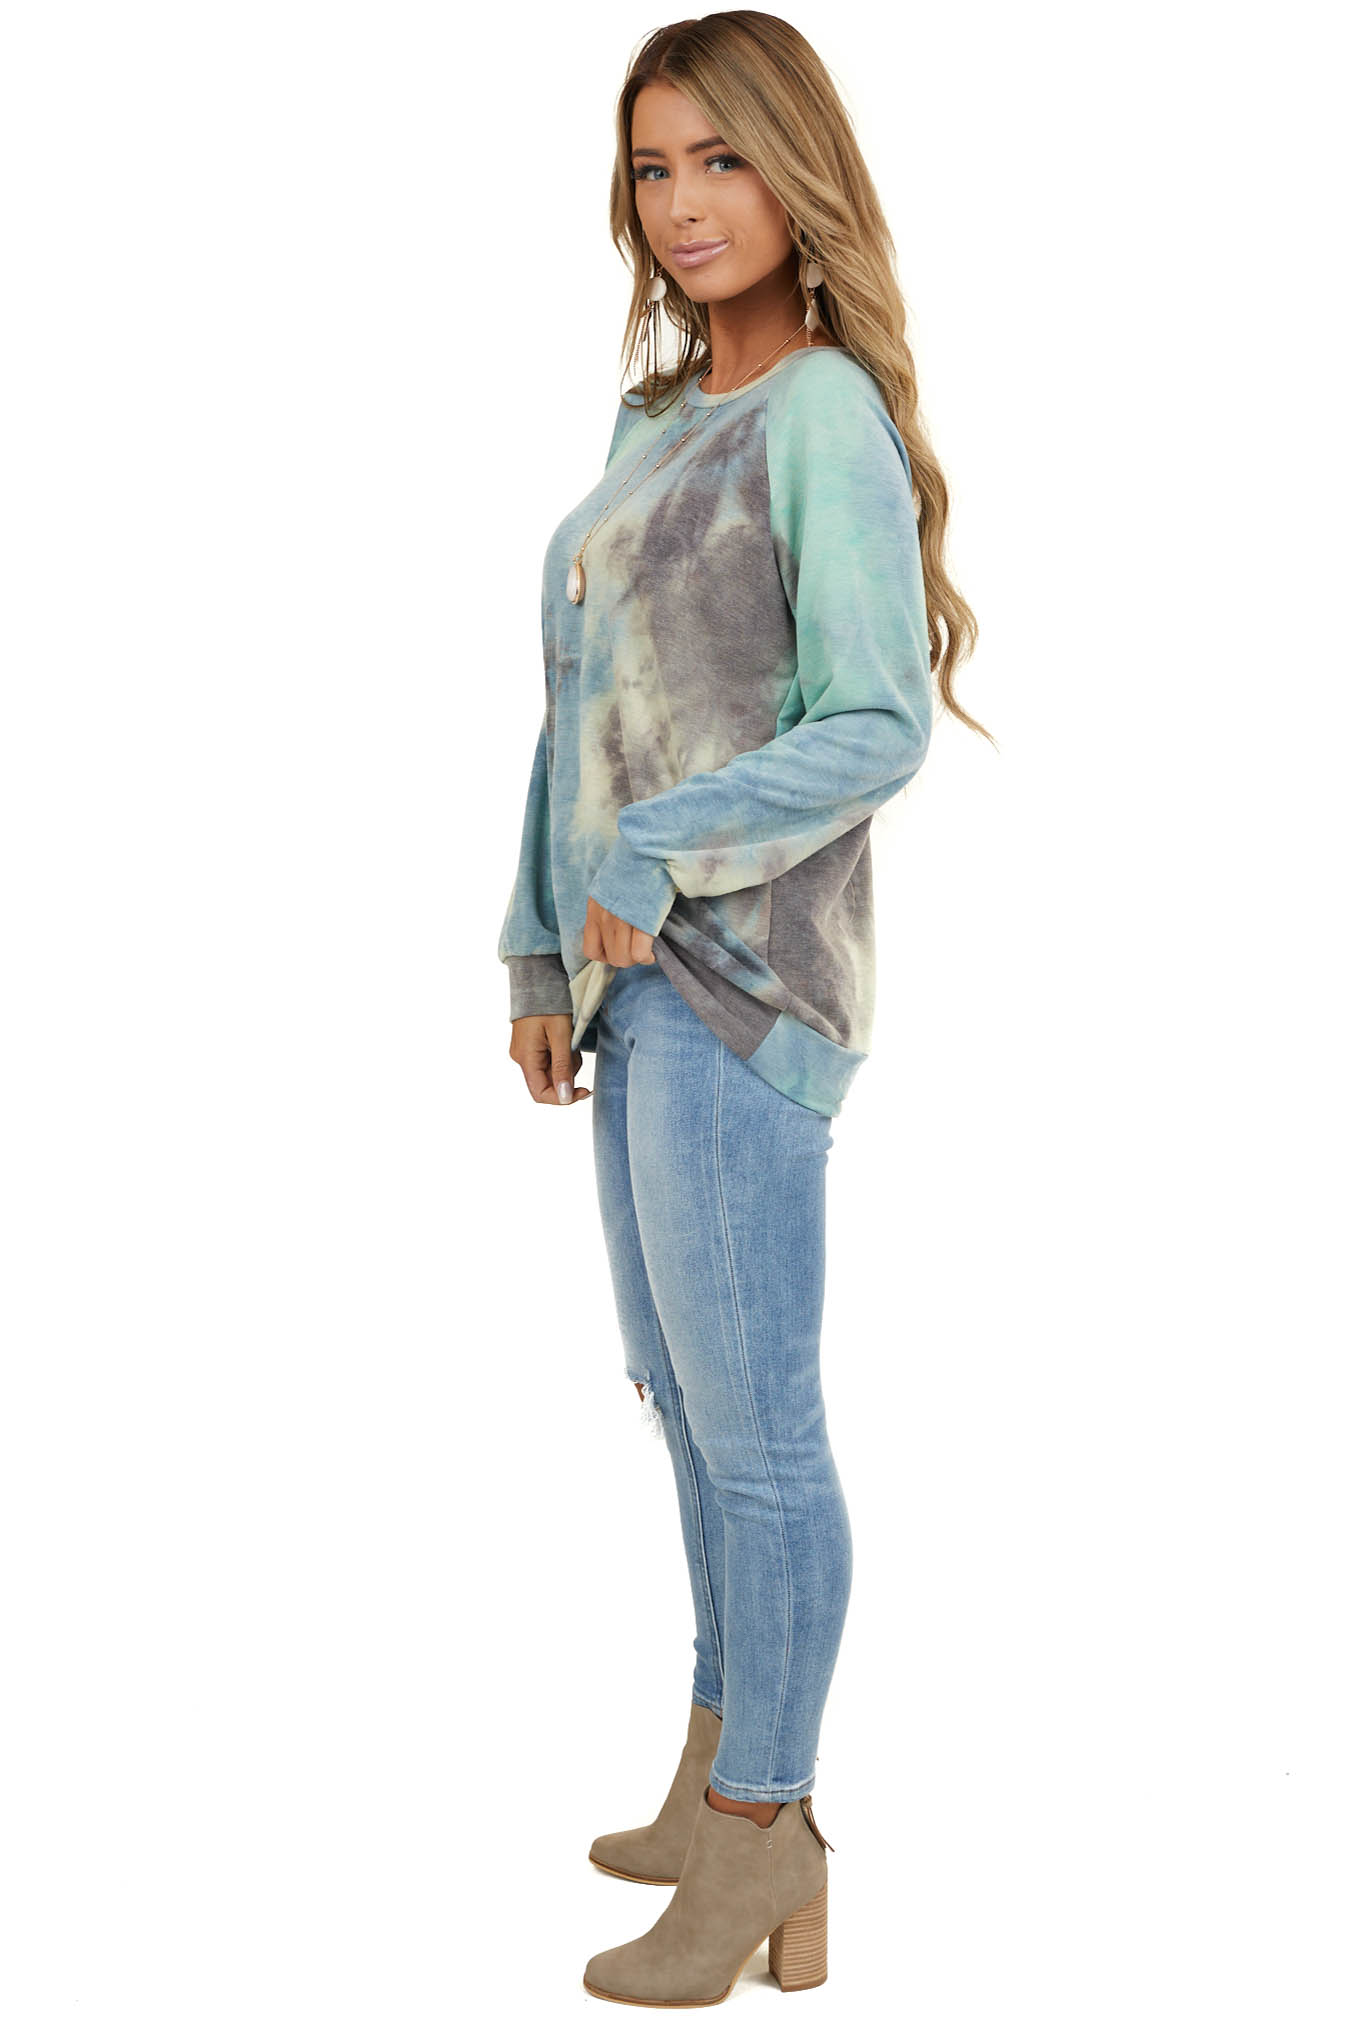 Dusty Blue and Charcoal Tie Dye Top with Long Sleeves